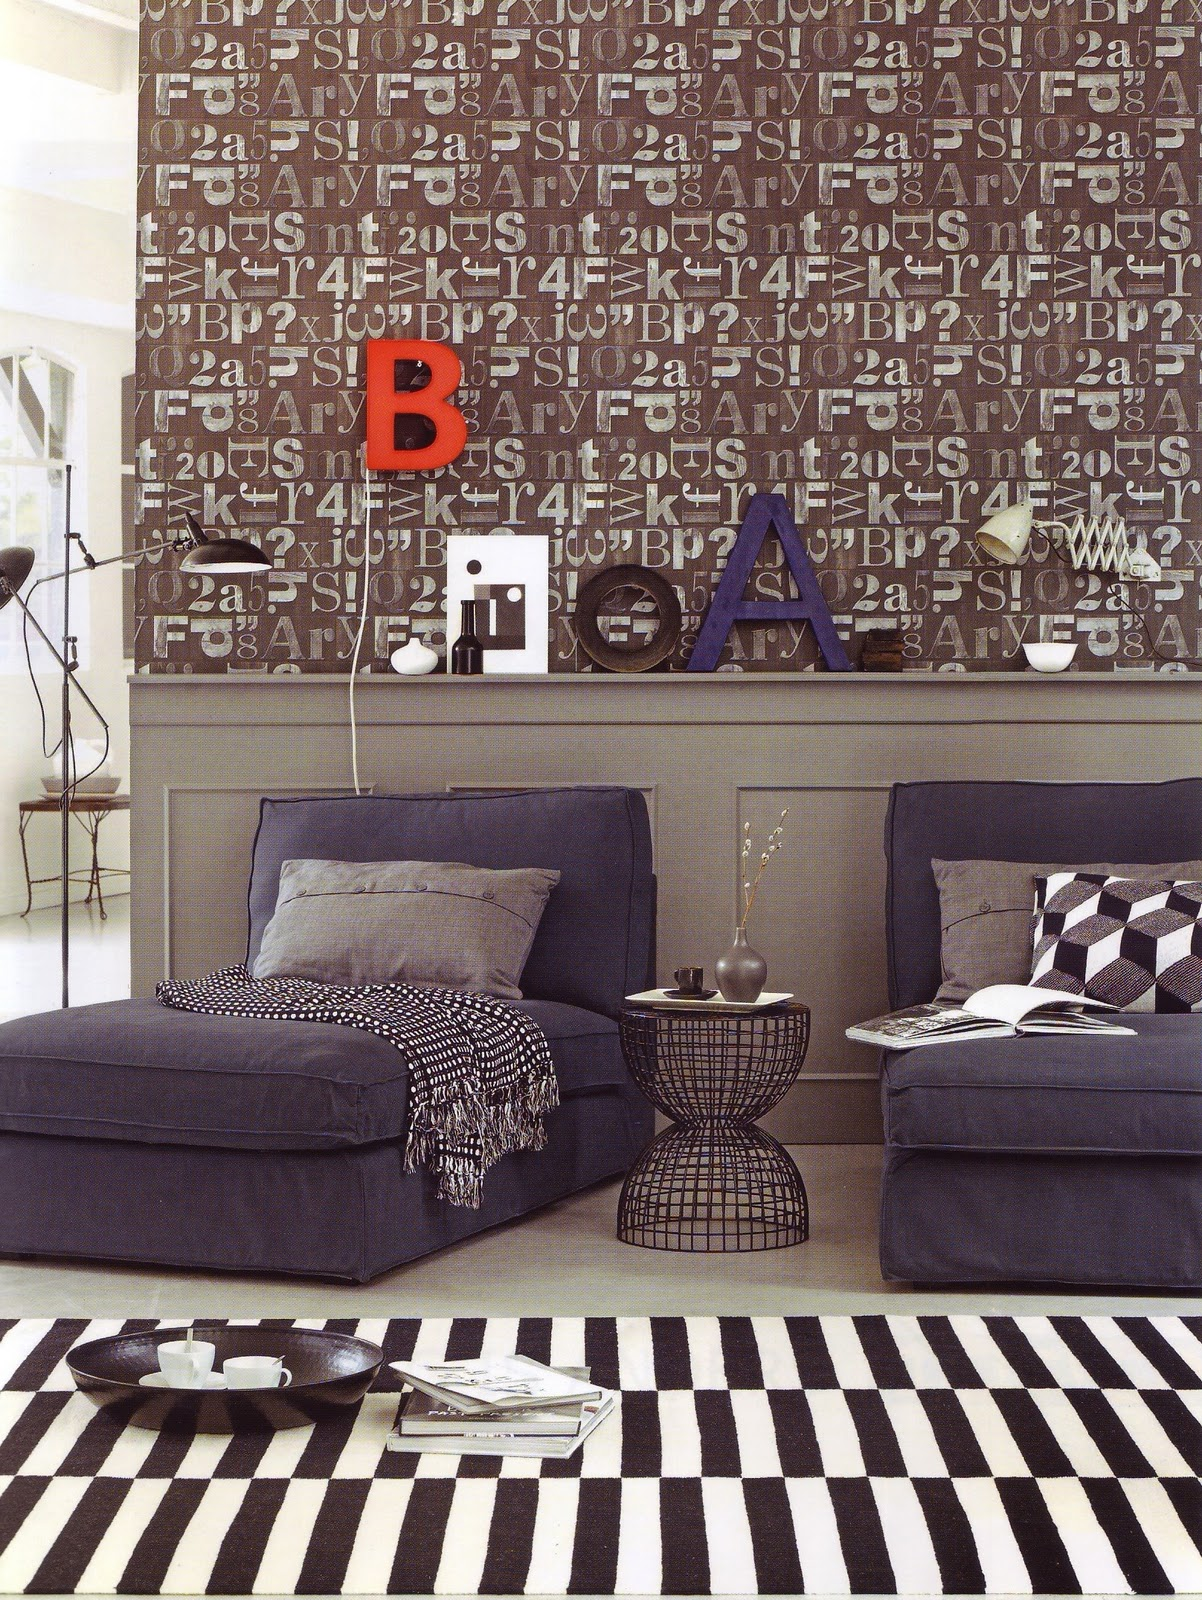 rosa 39 s inspiration cool styling with a twist of ikea part 2. Black Bedroom Furniture Sets. Home Design Ideas